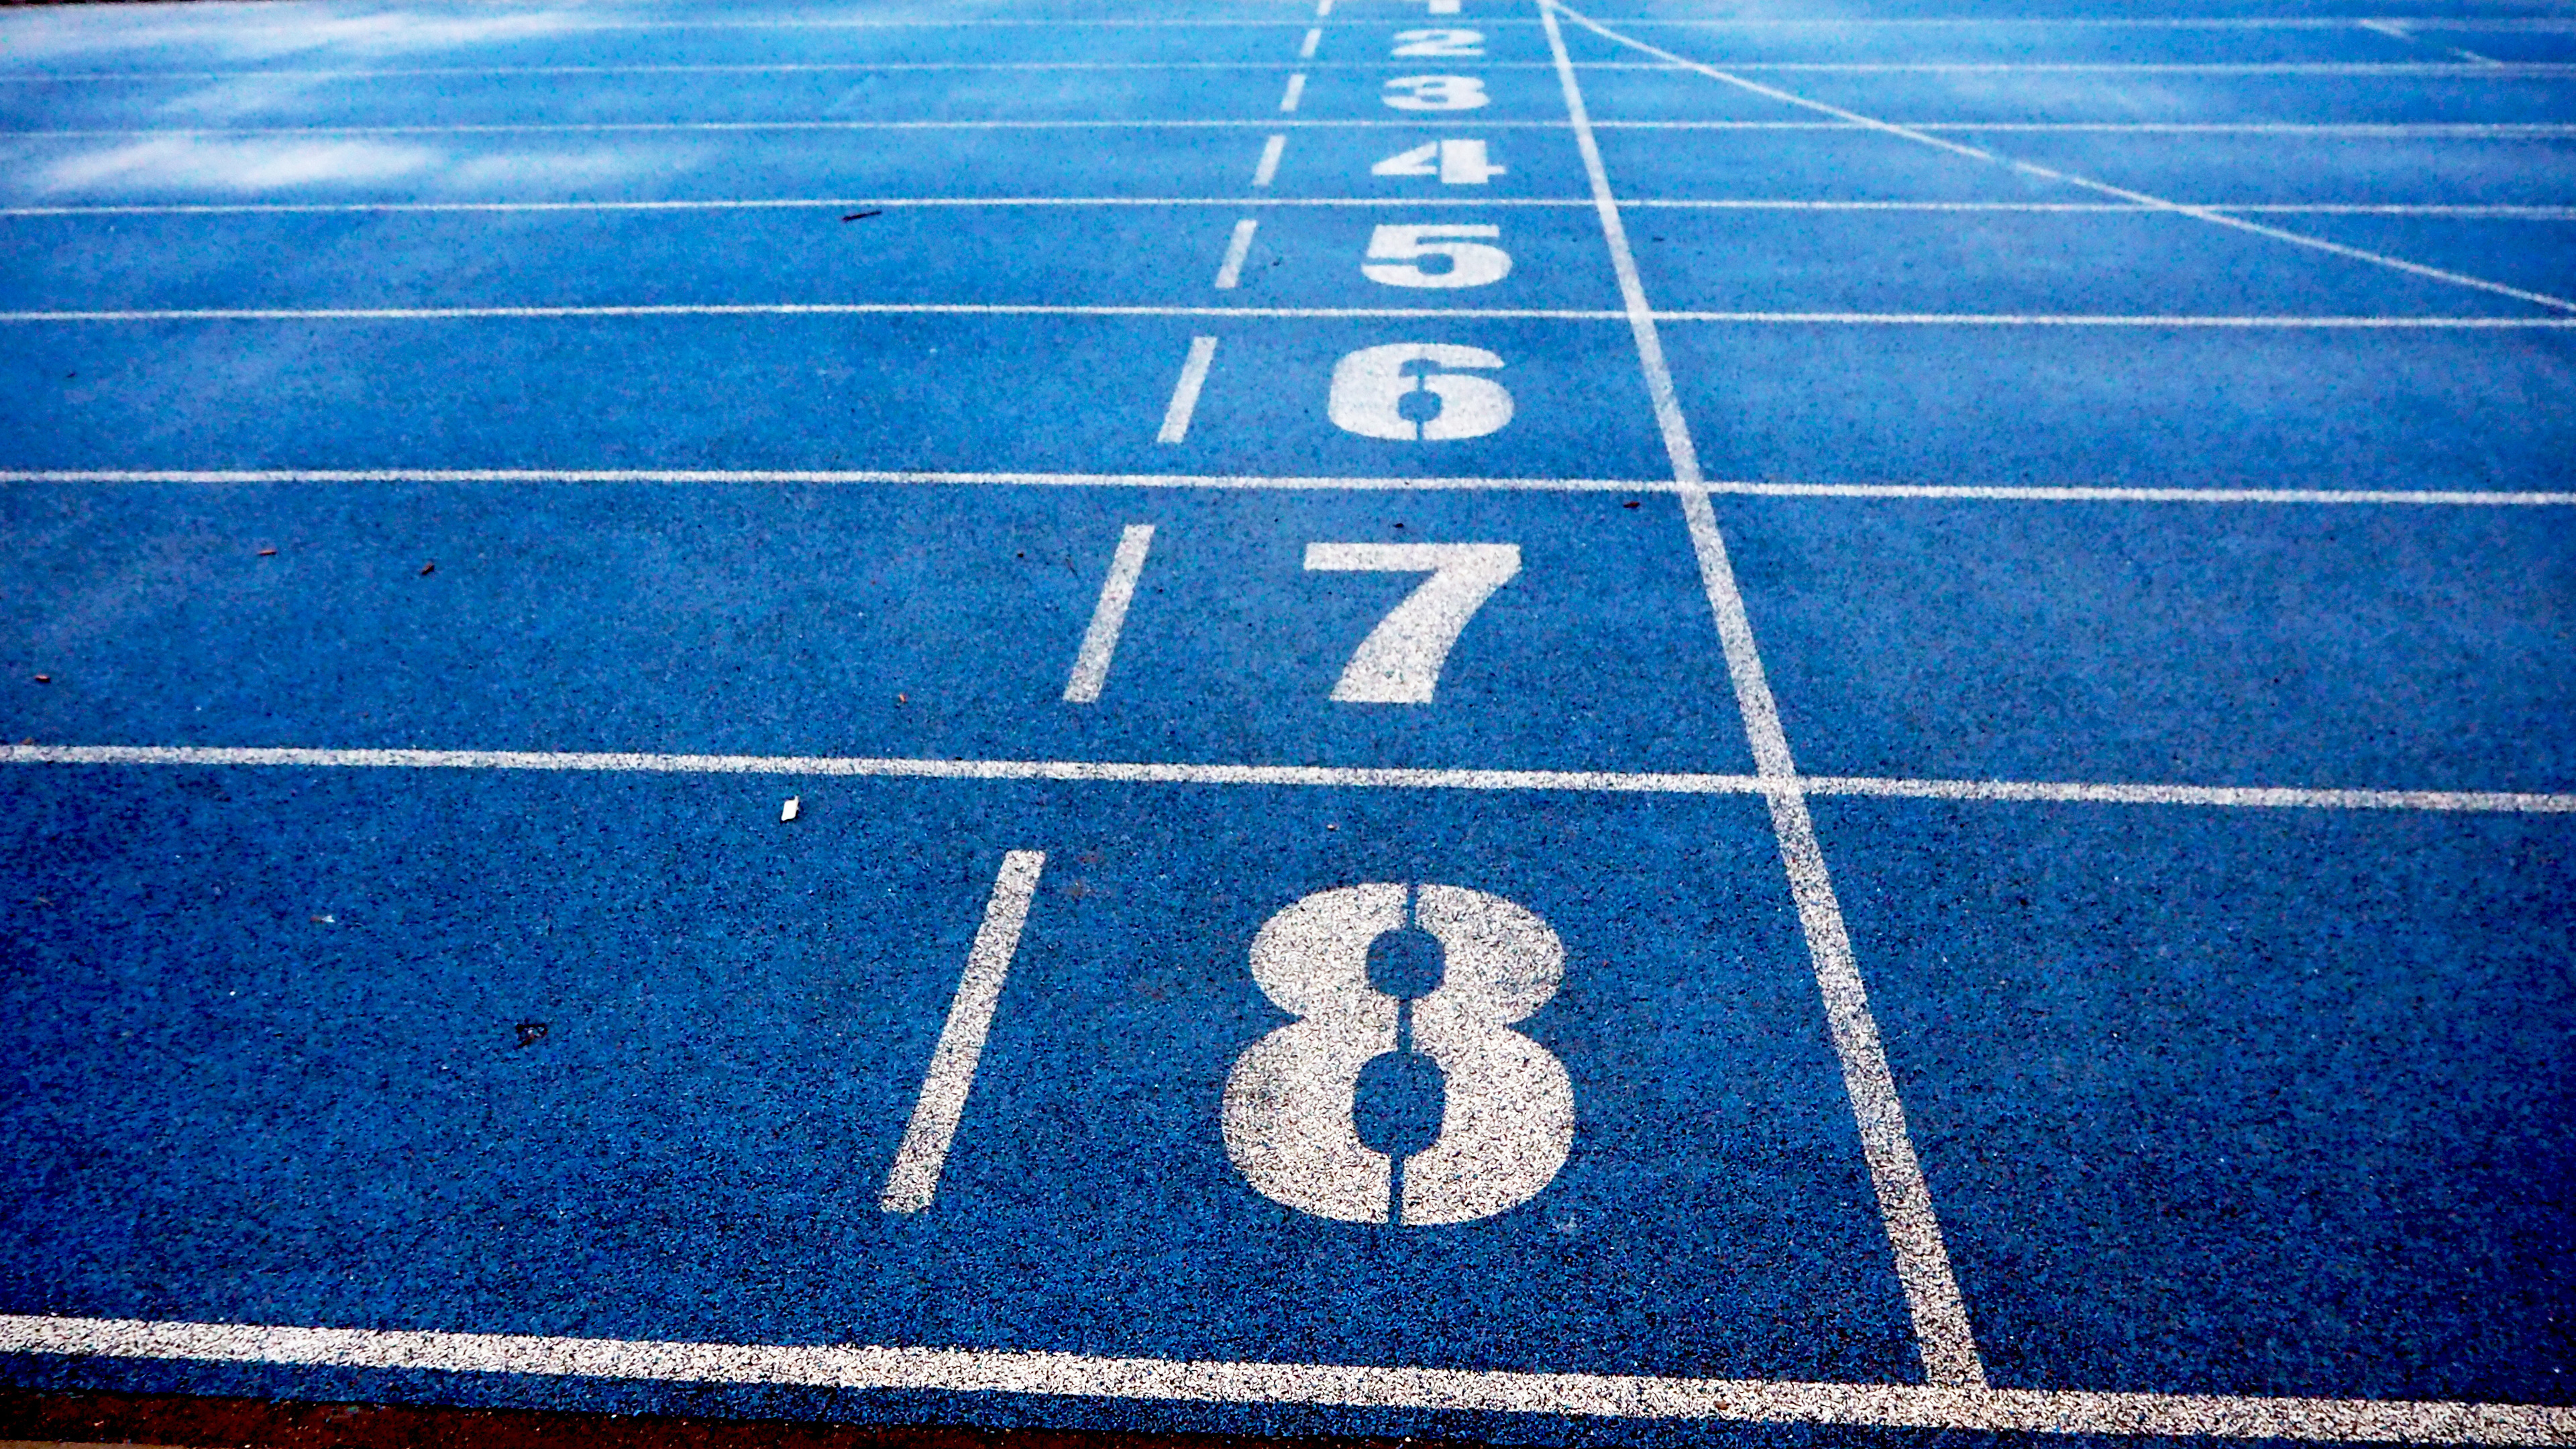 running track numbers 1538786826 - Running Track Numbers - track wallpapers, sports wallpapers, running wallpapers, running track wallpapers, hd-wallpapers, blue wallpapers, 4k-wallpapers